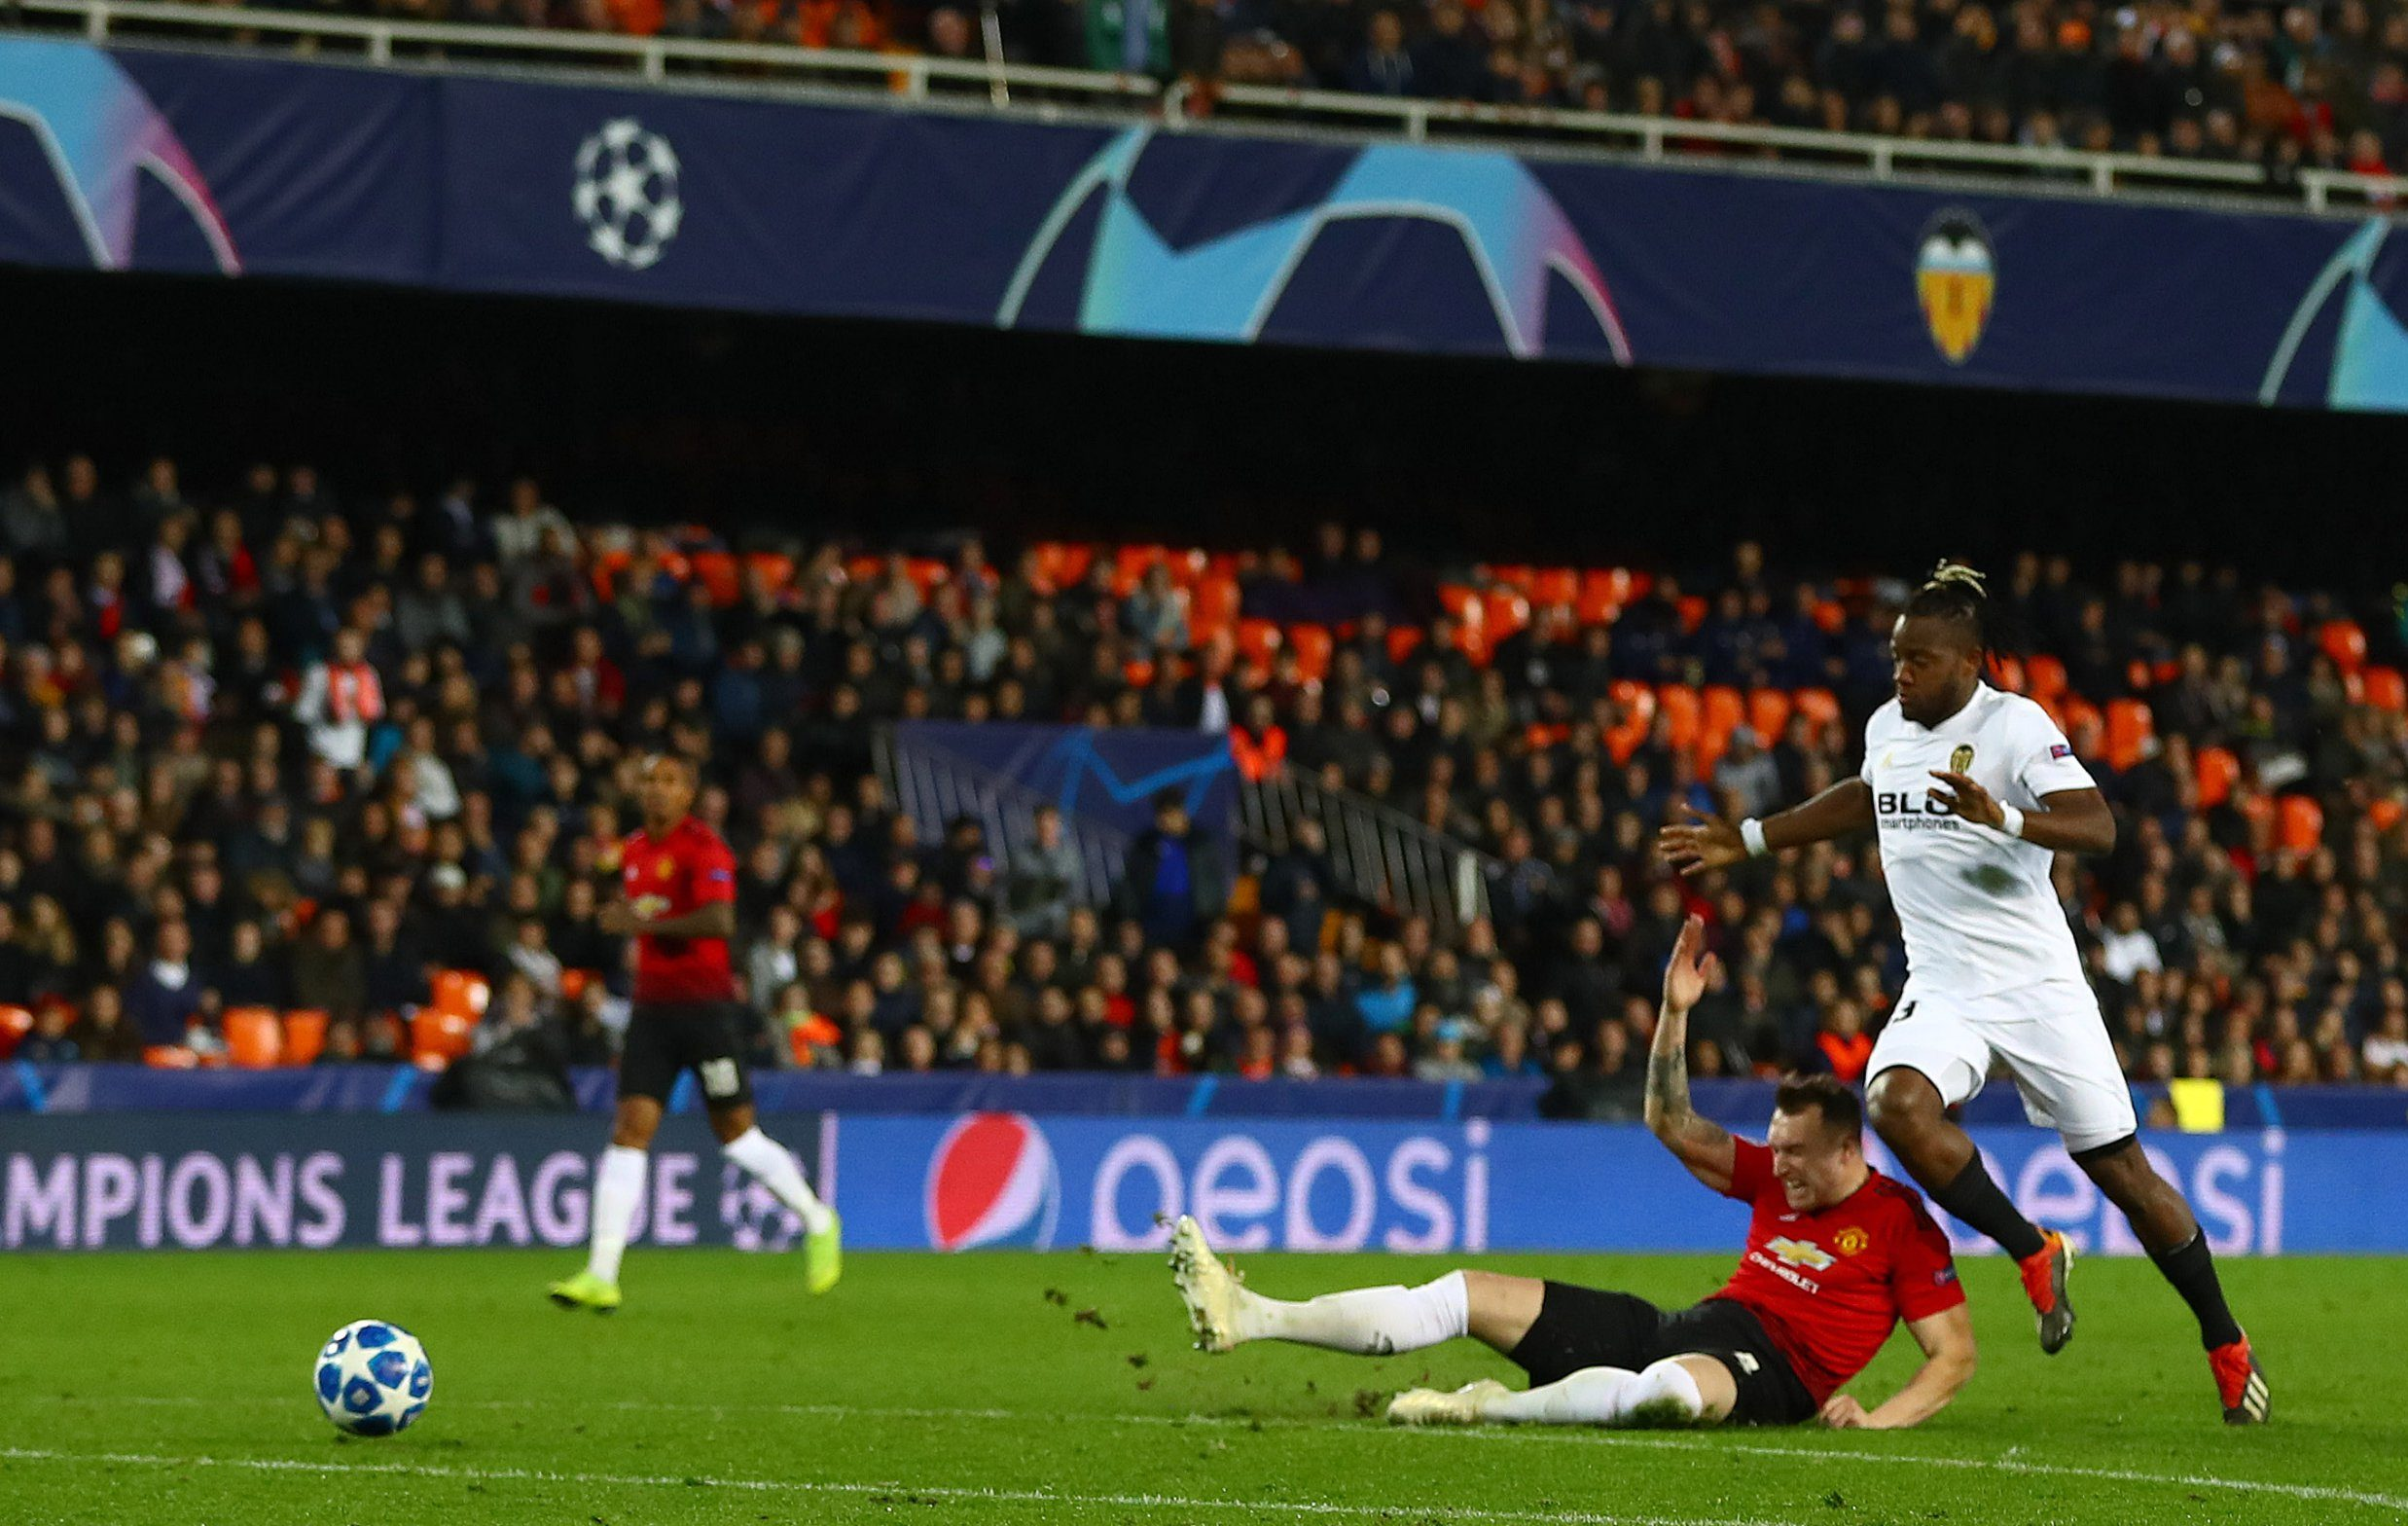 Owen Hargreaves: Phil Jones right to blame Eric Bailly for comical own goal